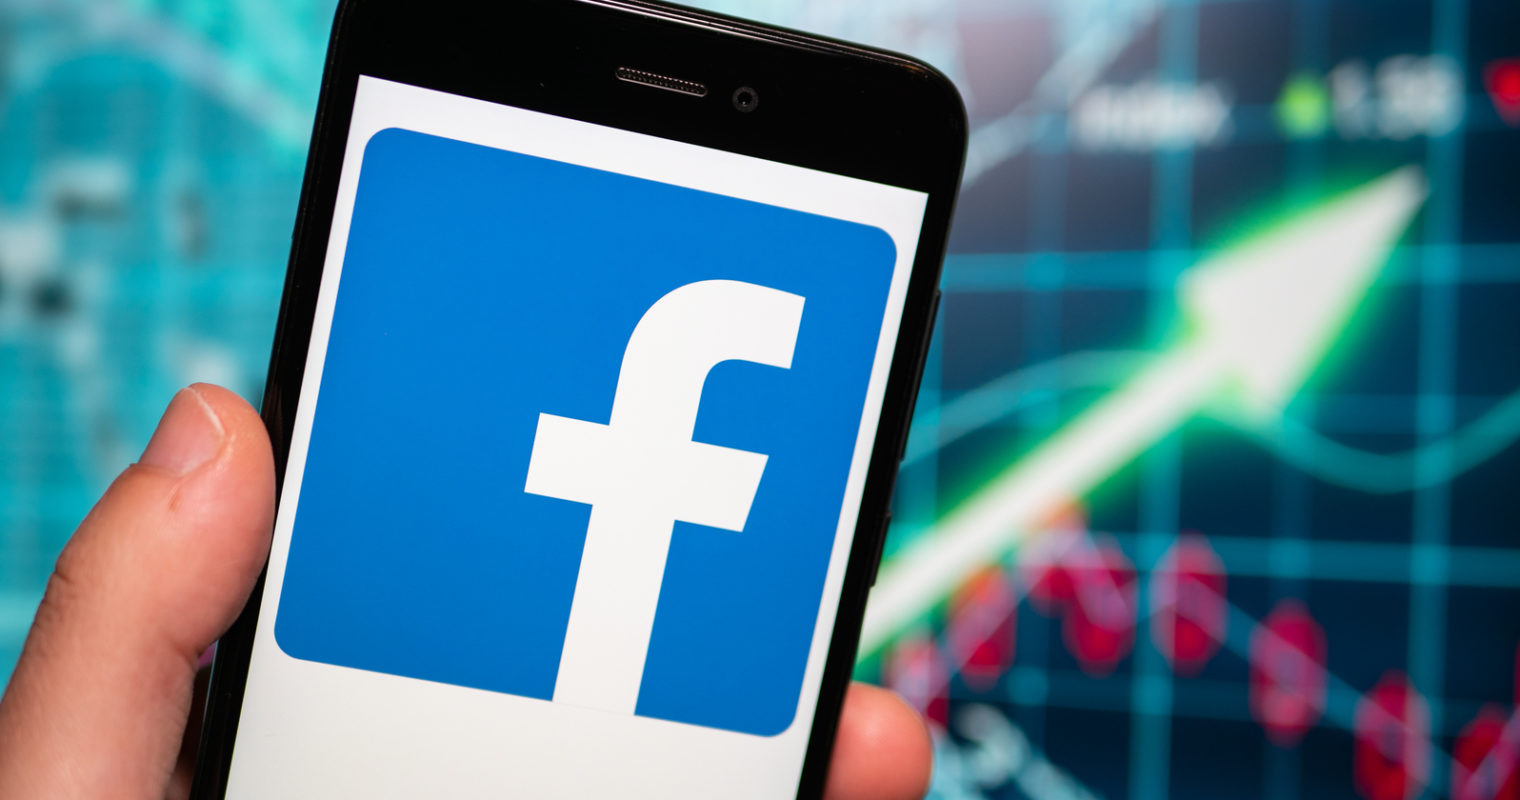 Facebook is Wrong 27% of the Time When Detecting Users' Interests [STUDY]